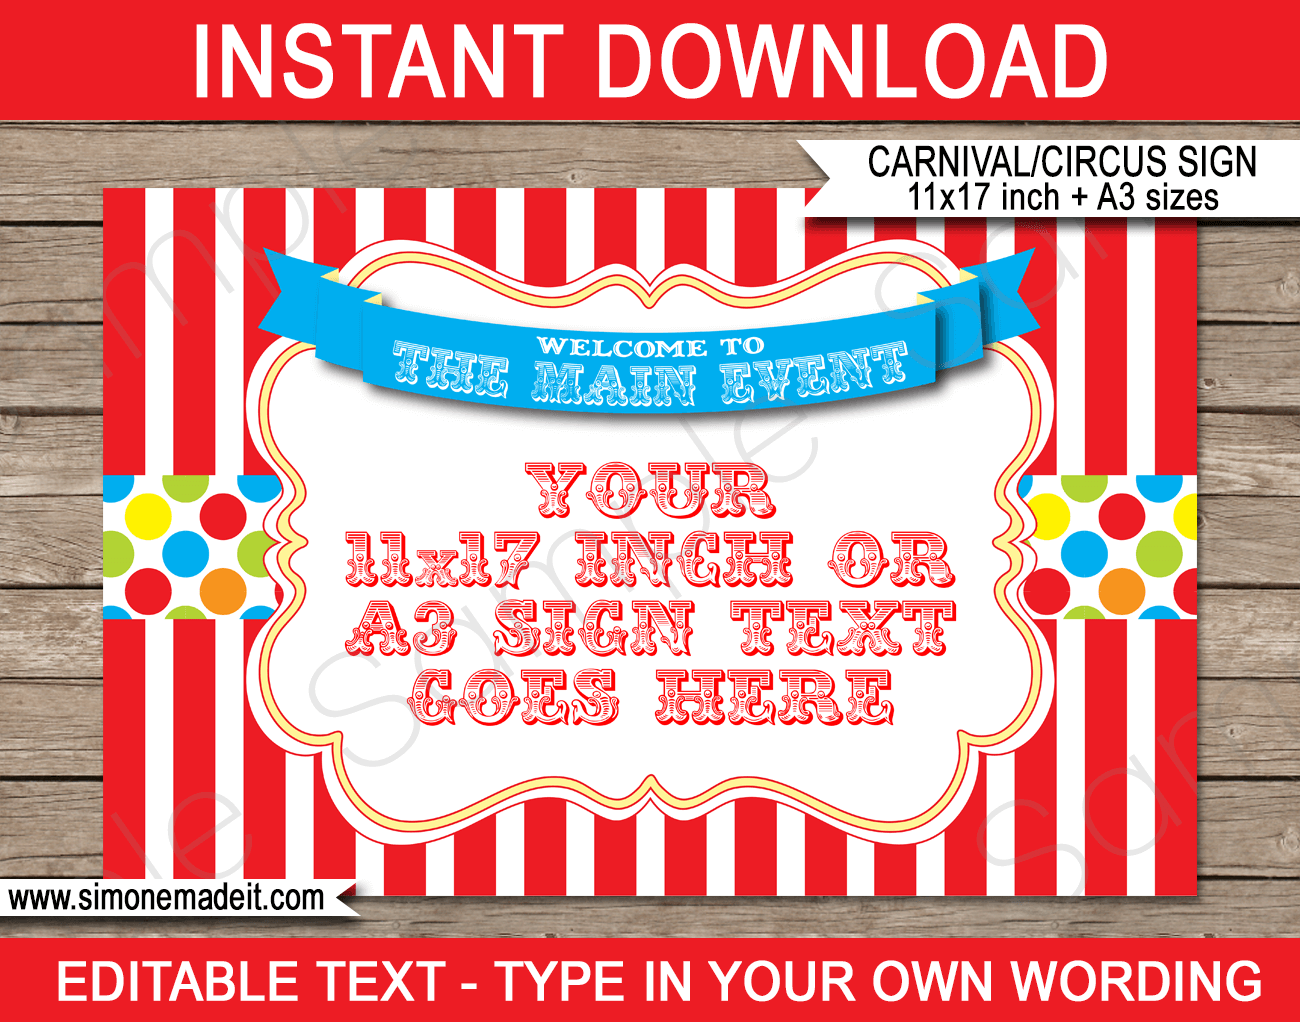 Printable Carnival Welcome Sign Template with Editable Text | Circus Theme Party Decorations | $4.00 Instant Download via SIMONEmadeit.com